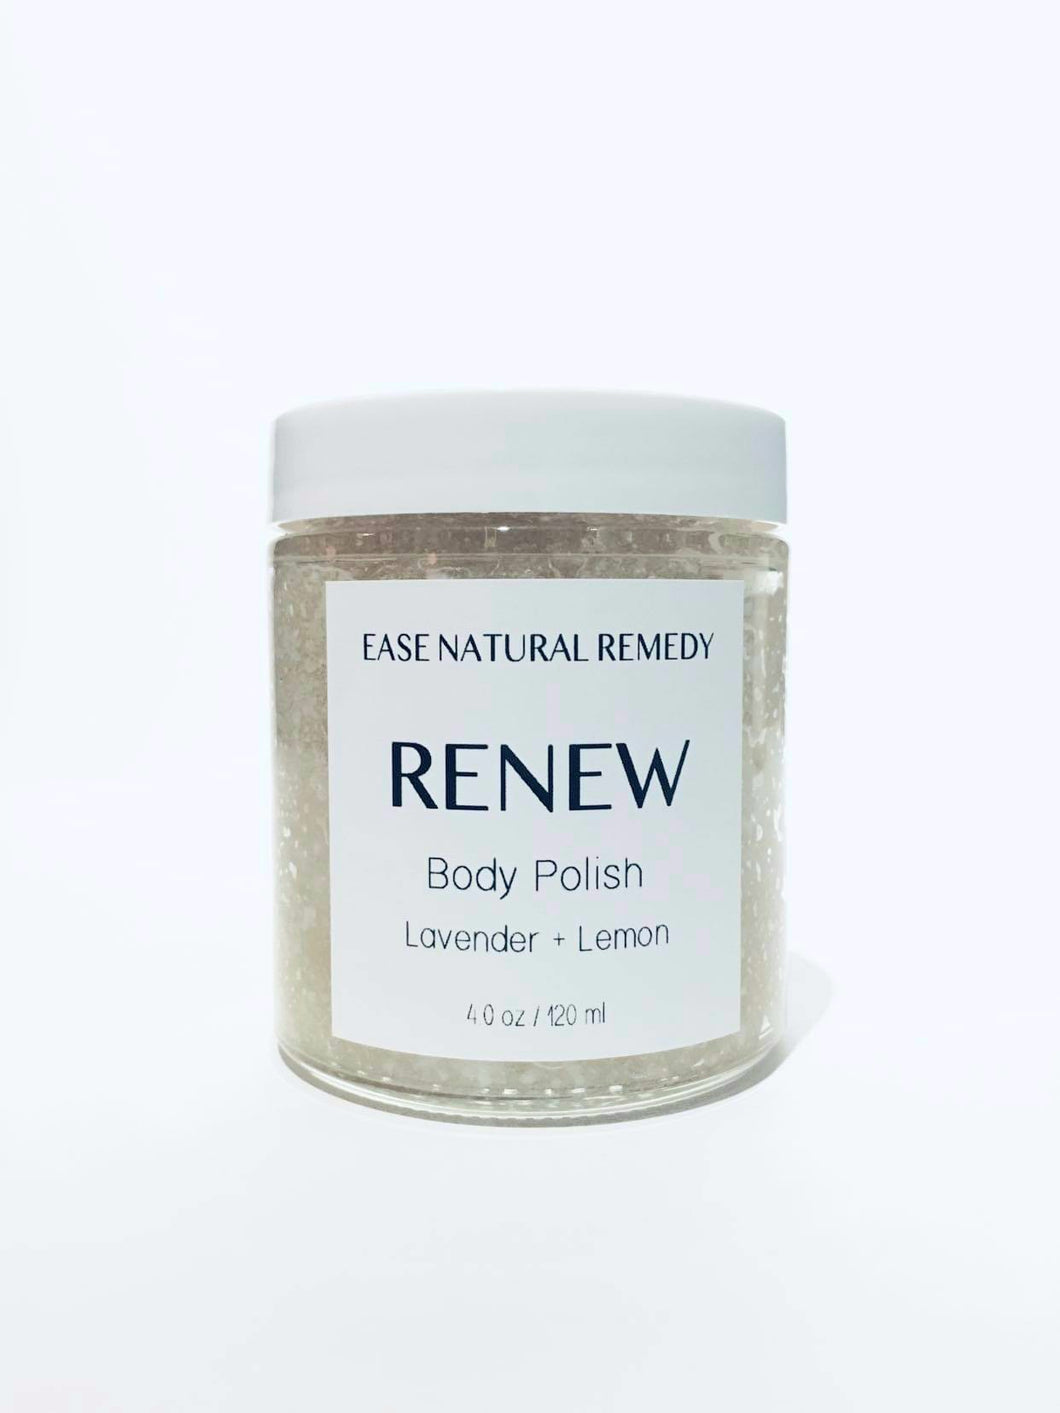 RENEW - Body Polish  (Lavender + Lemon)